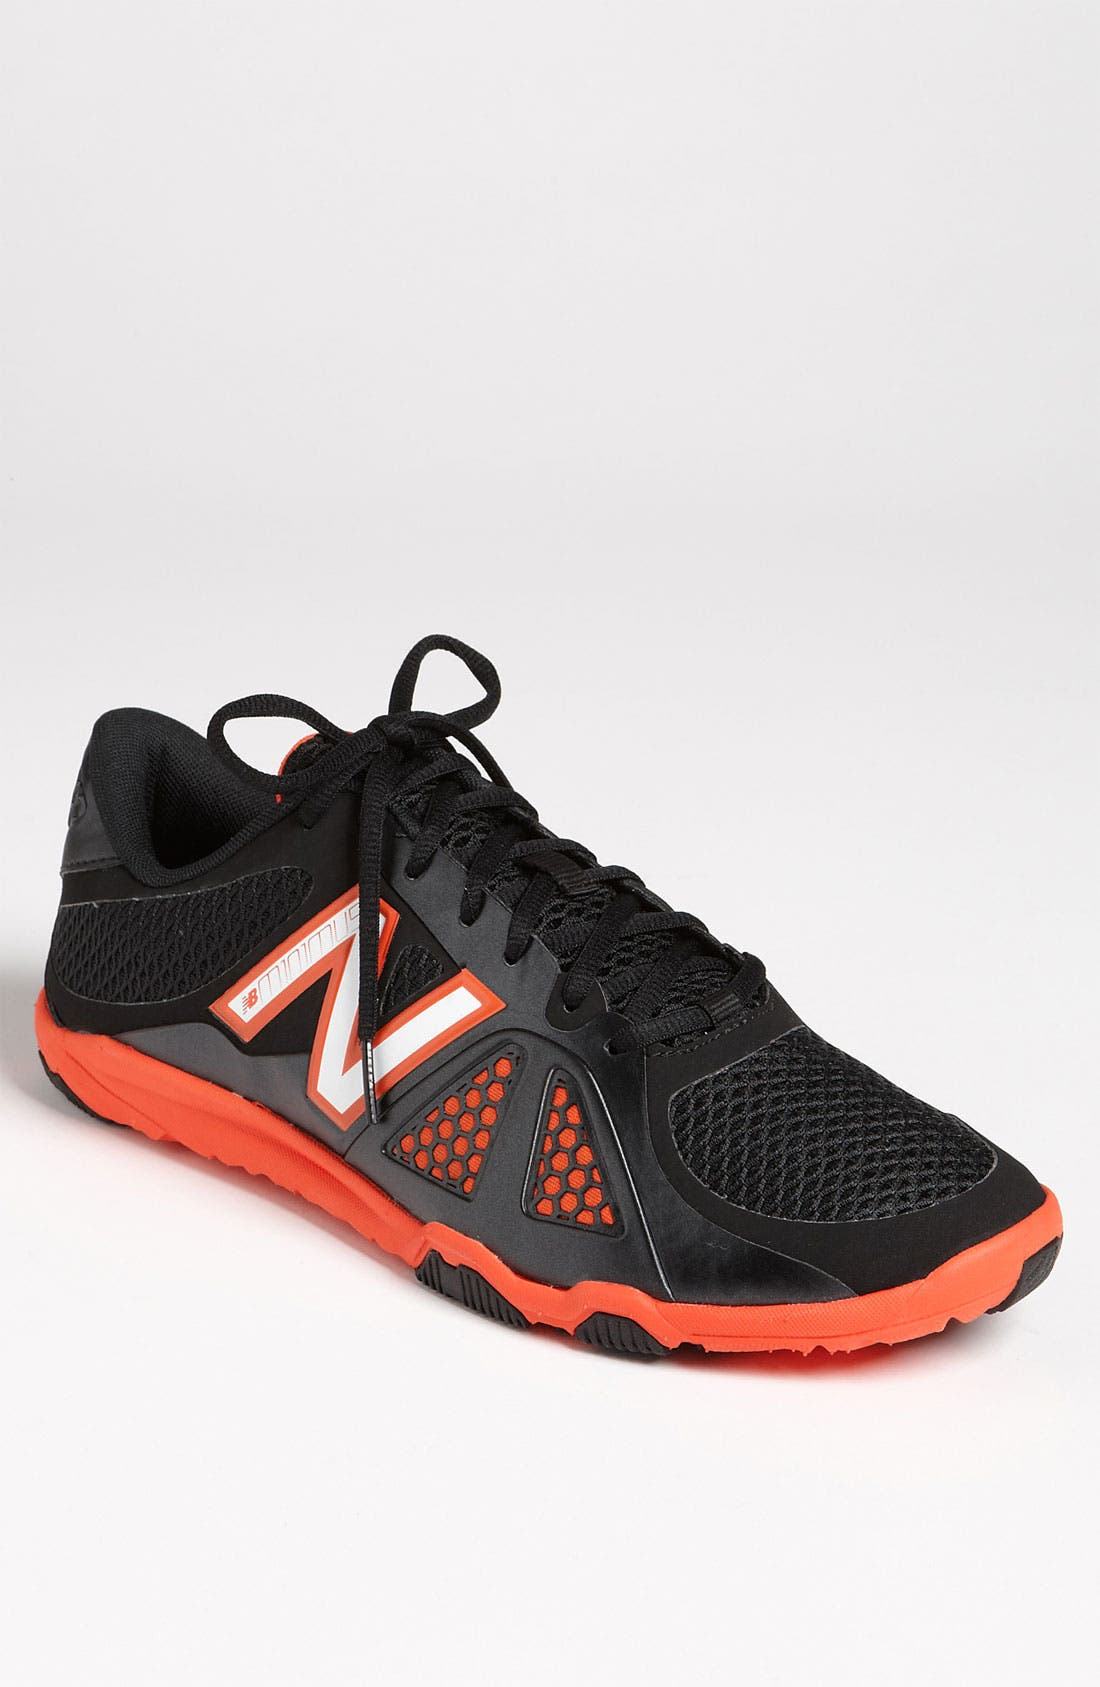 Main Image - New Balance 'Minimus' Training Shoe (Men)